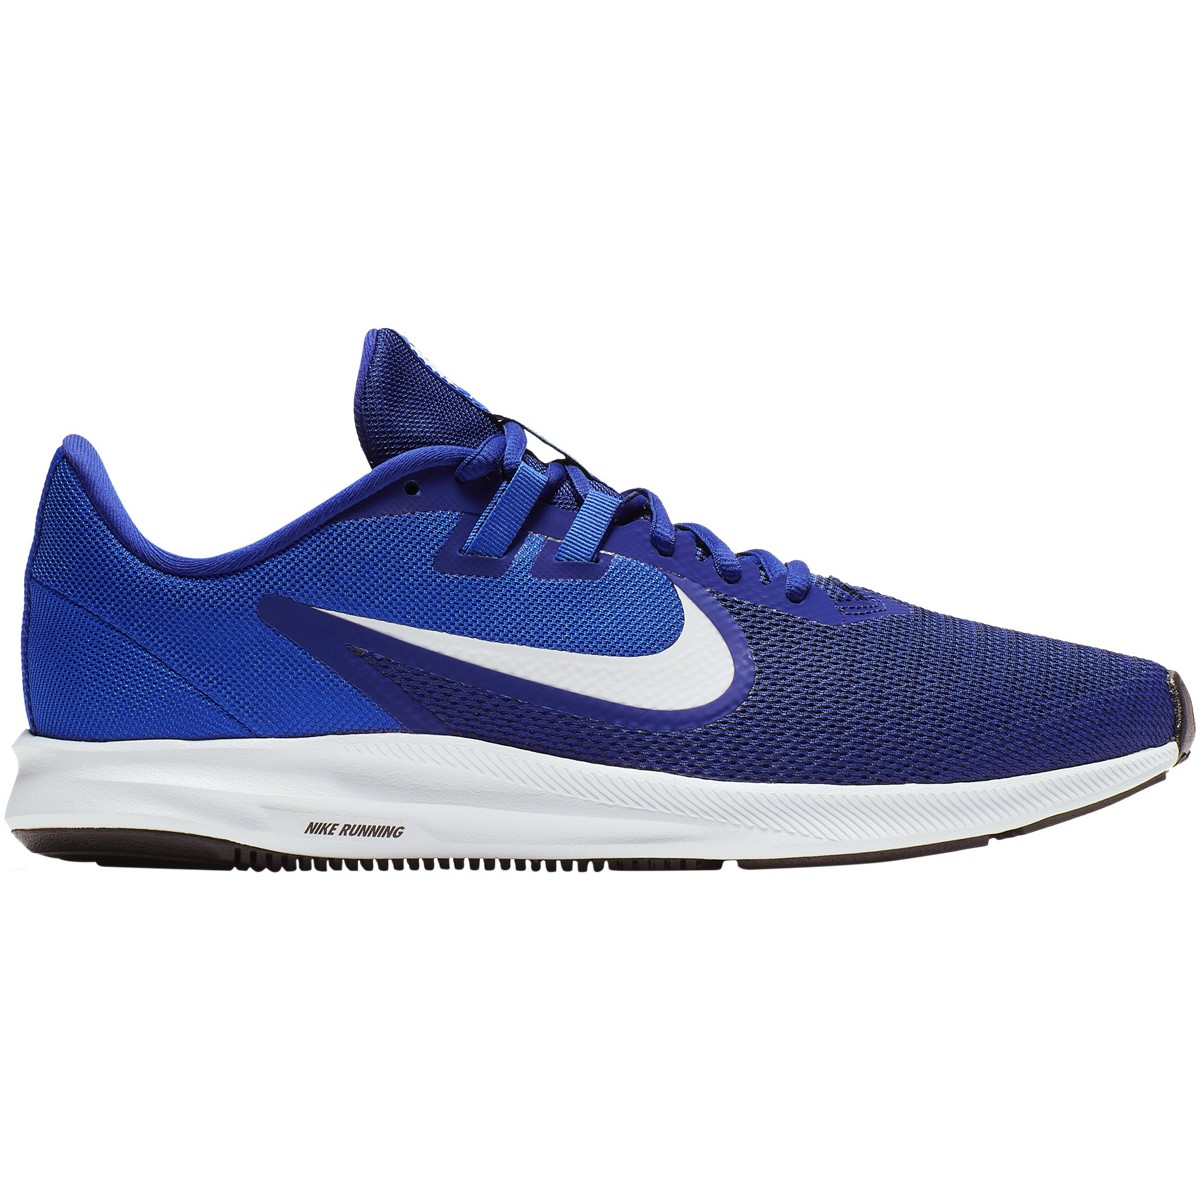 CHAUSSURES NIKE RUNNING DOWNSHIFTER 9